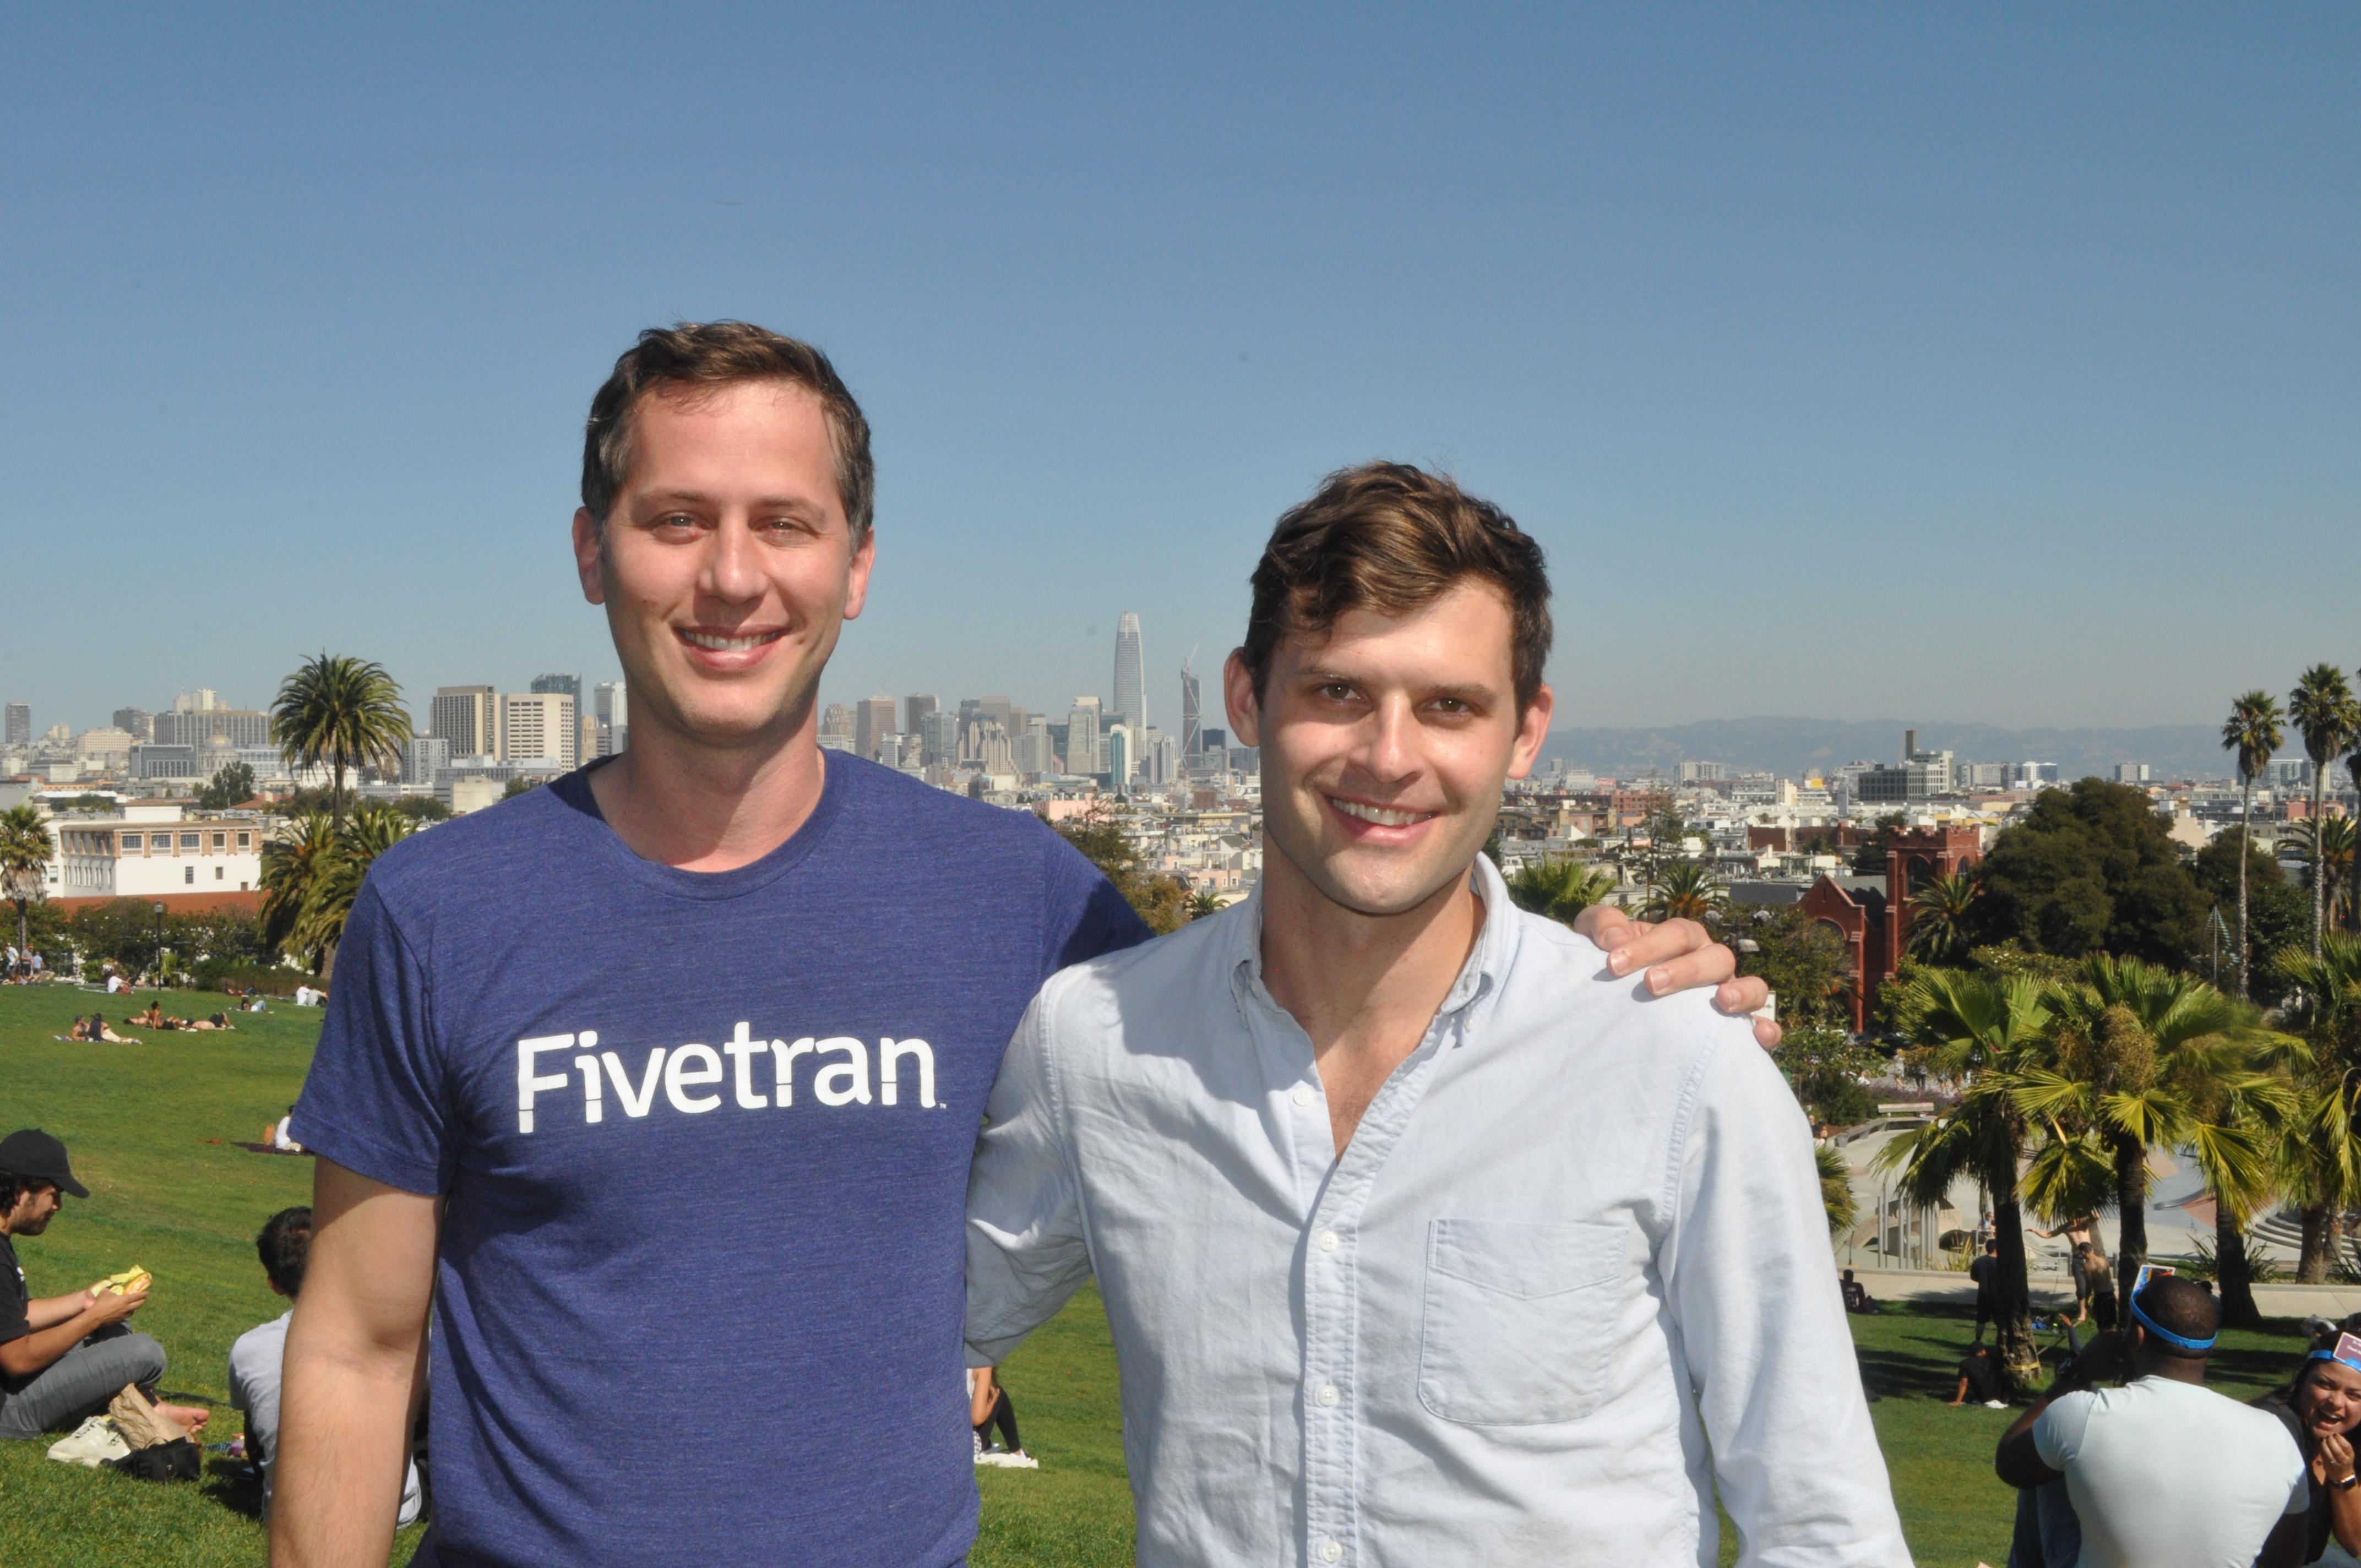 Fivetran founders. George Fraser (left) and Taylor Brown.